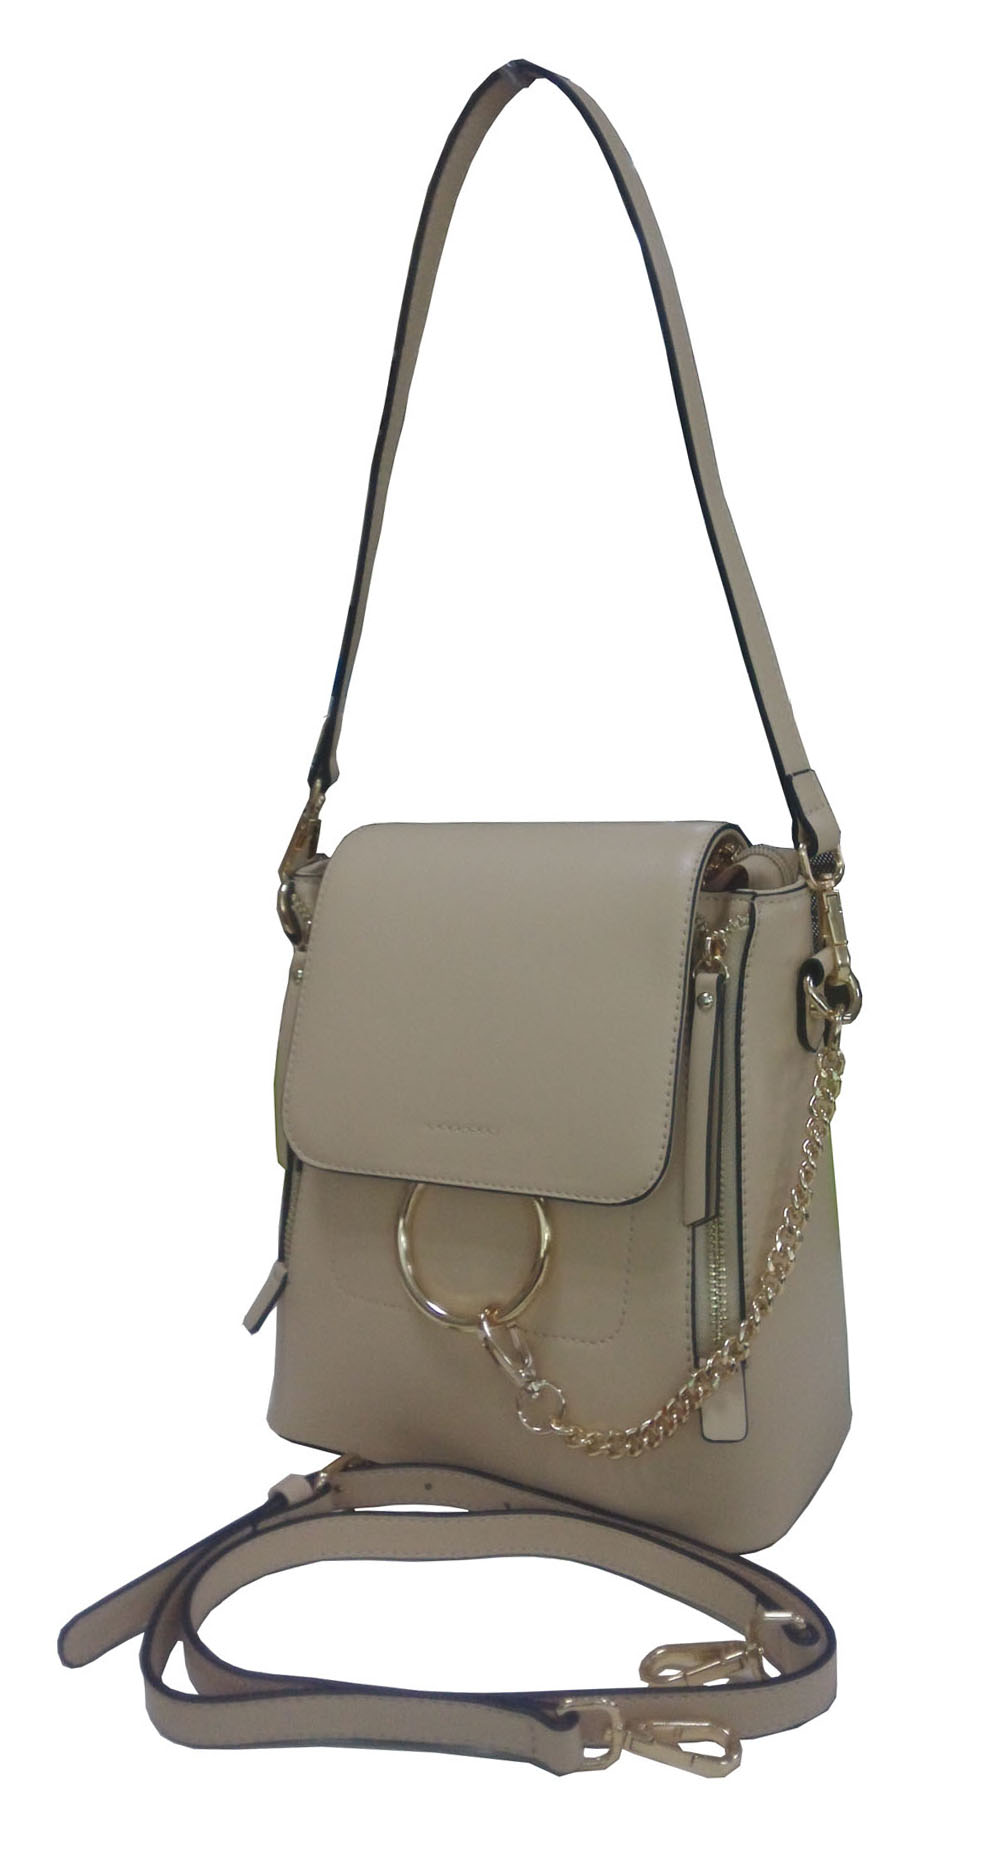 Handbags-shoulder bag+rucksack